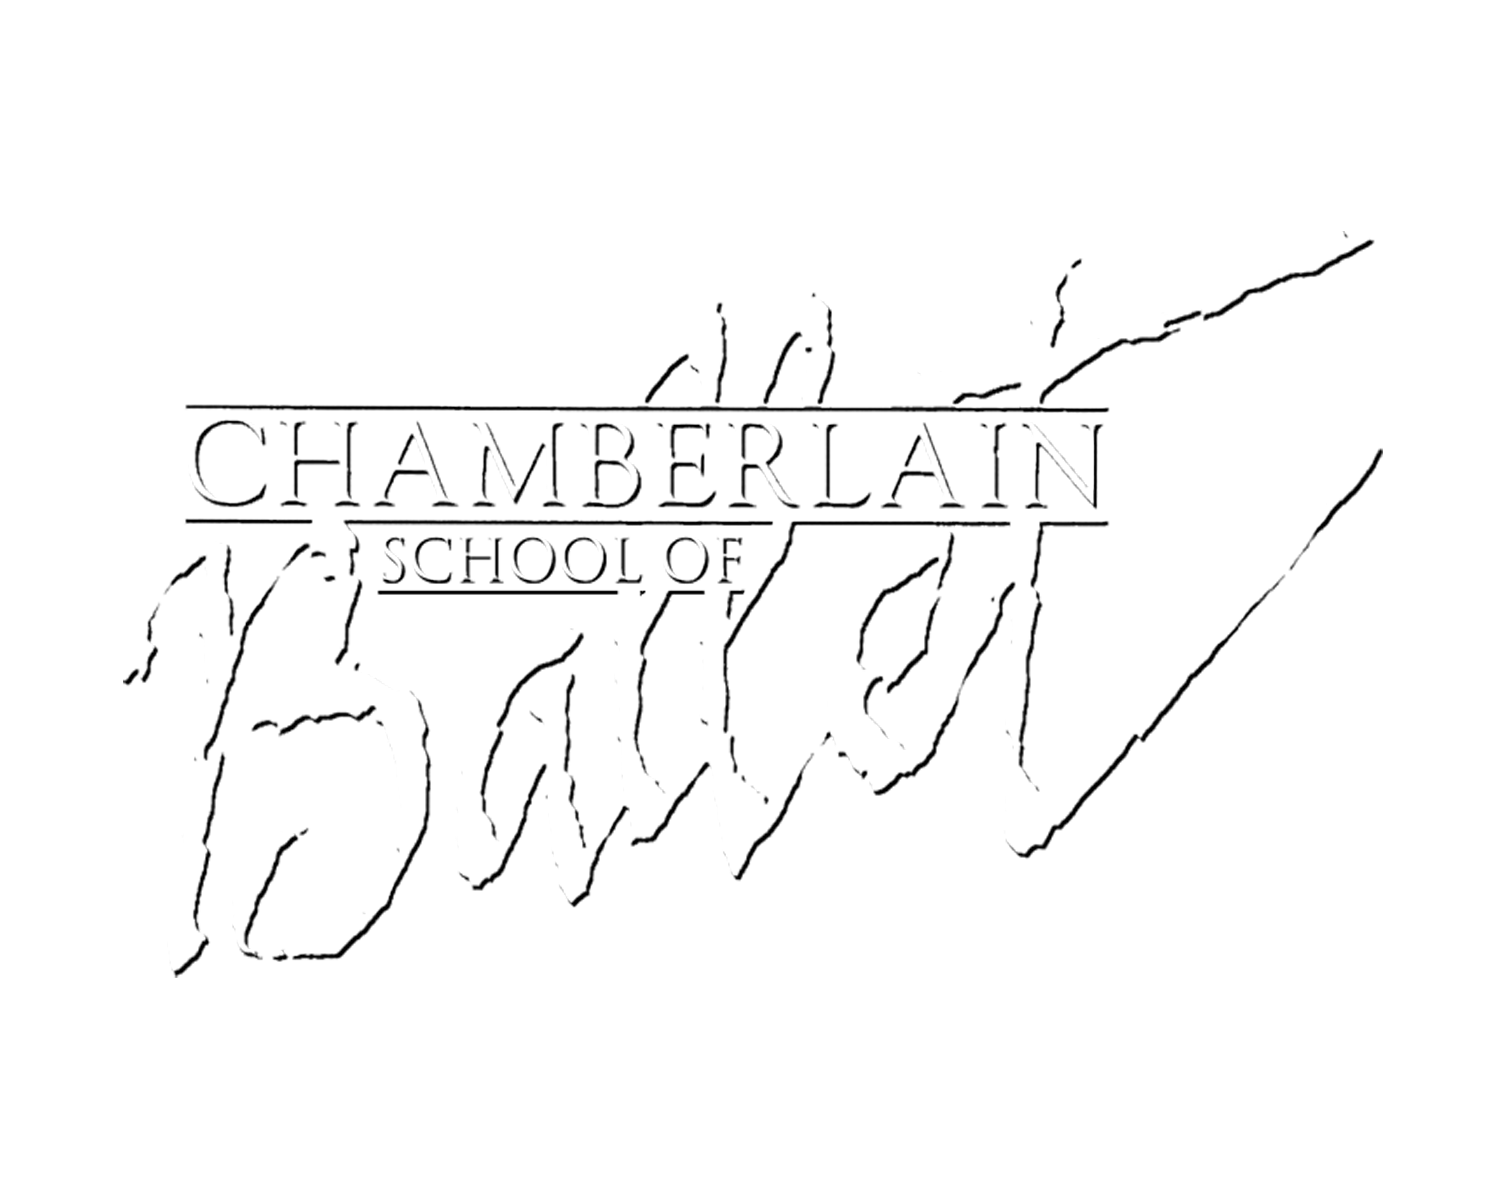 Chamberlain School of Ballet